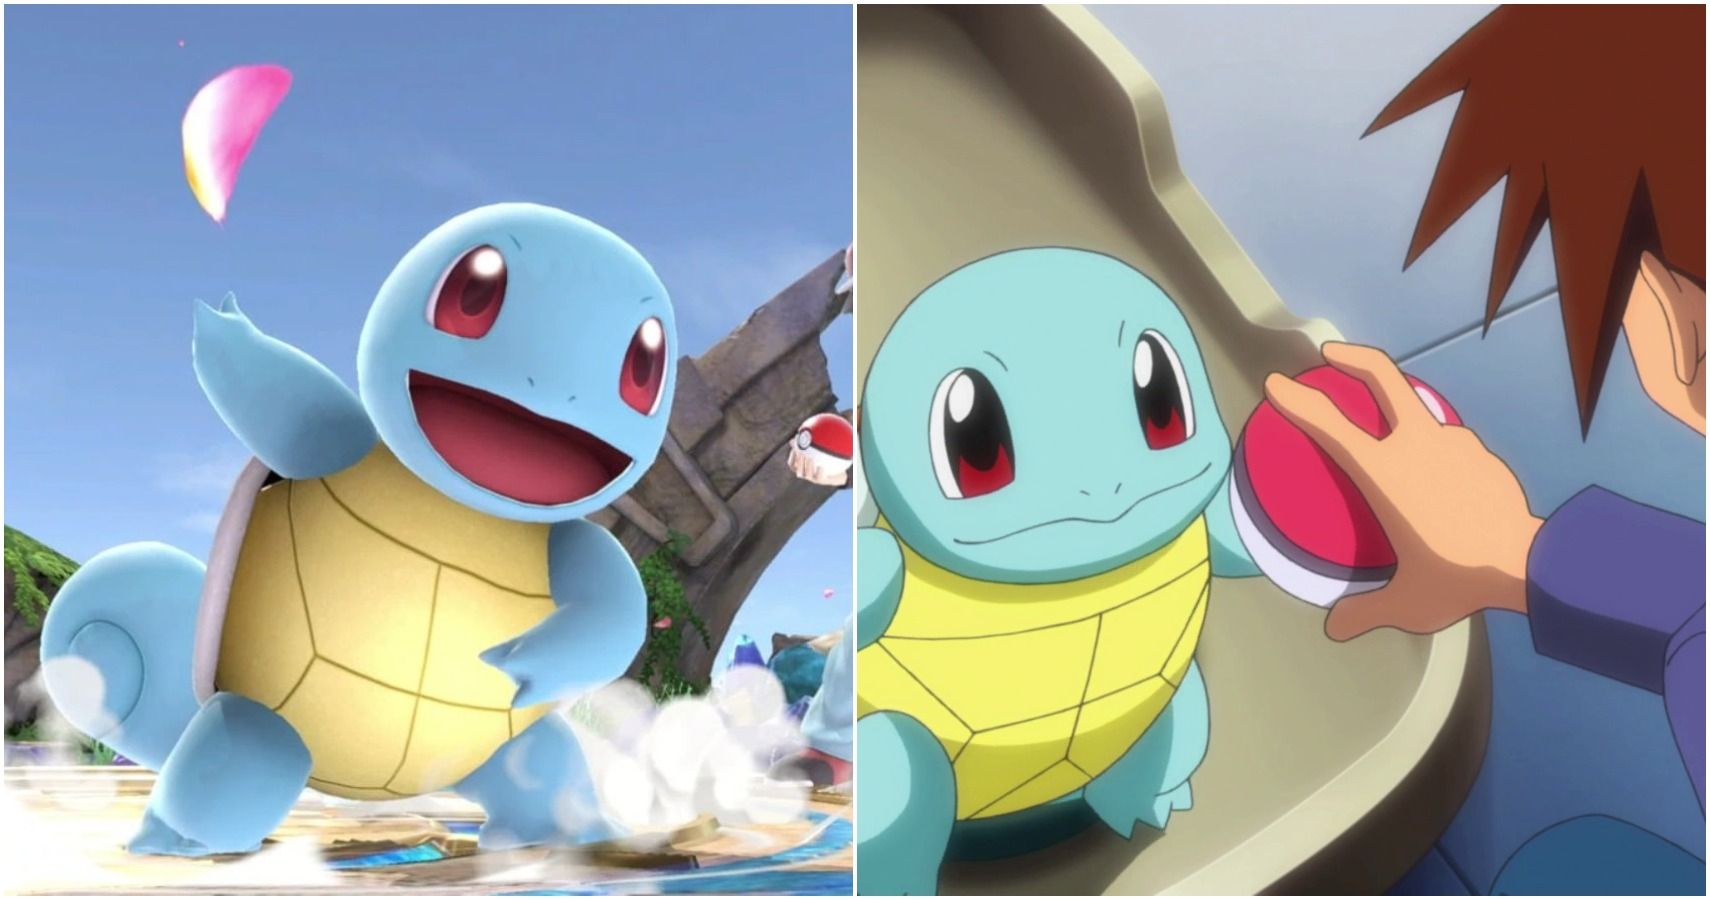 squirtle Charmander or